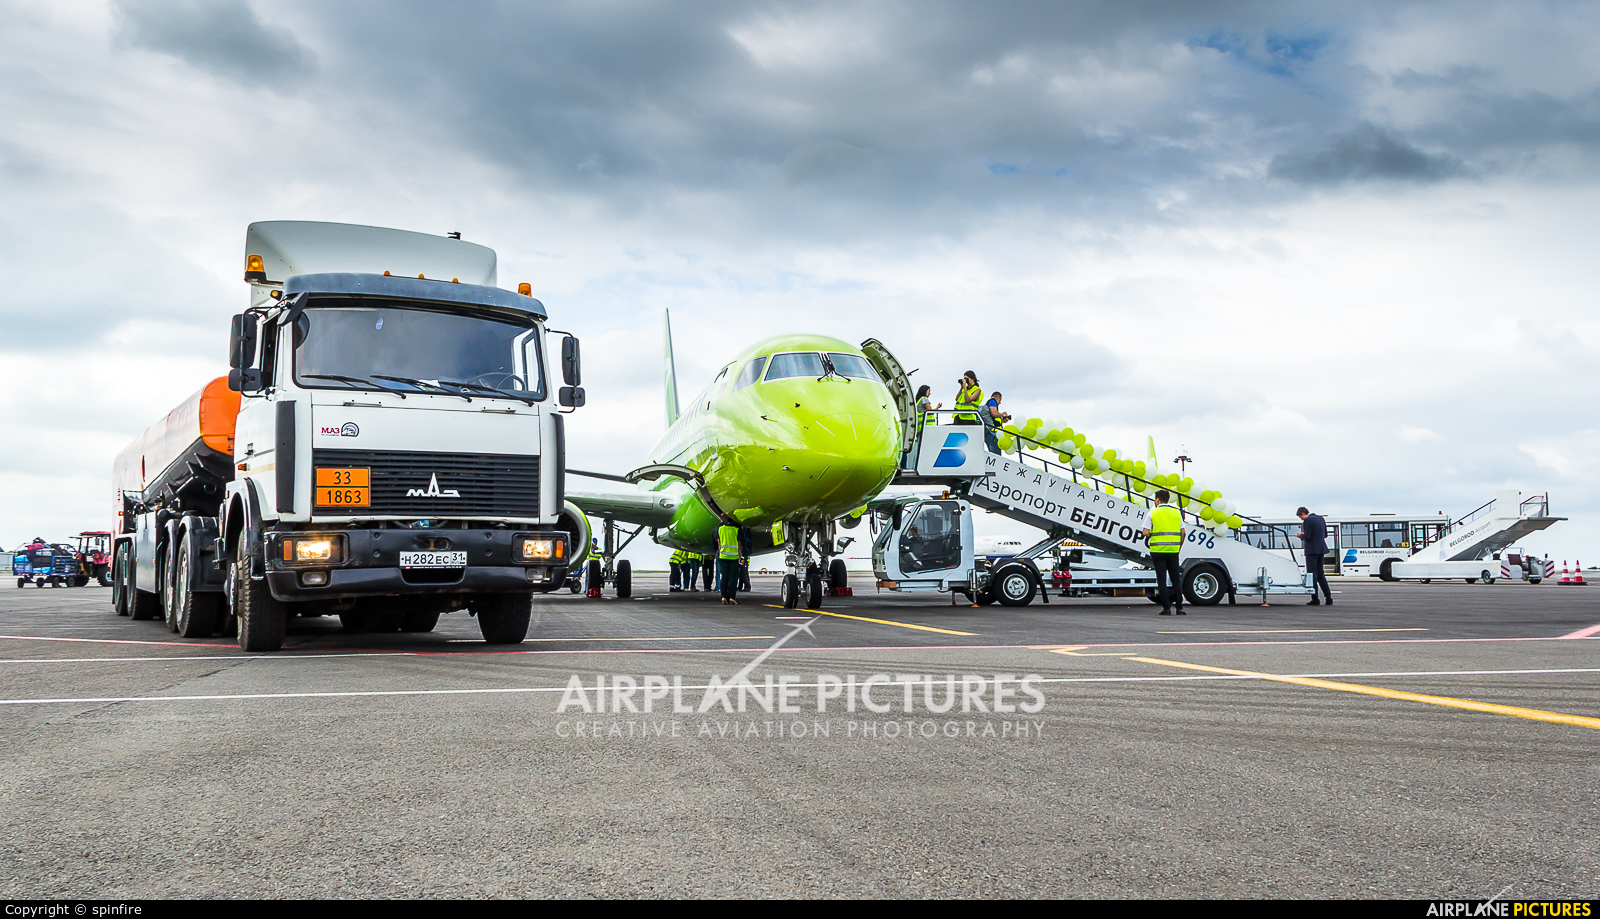 S7 Airlines VQ-BYW aircraft at Belgorod Intl